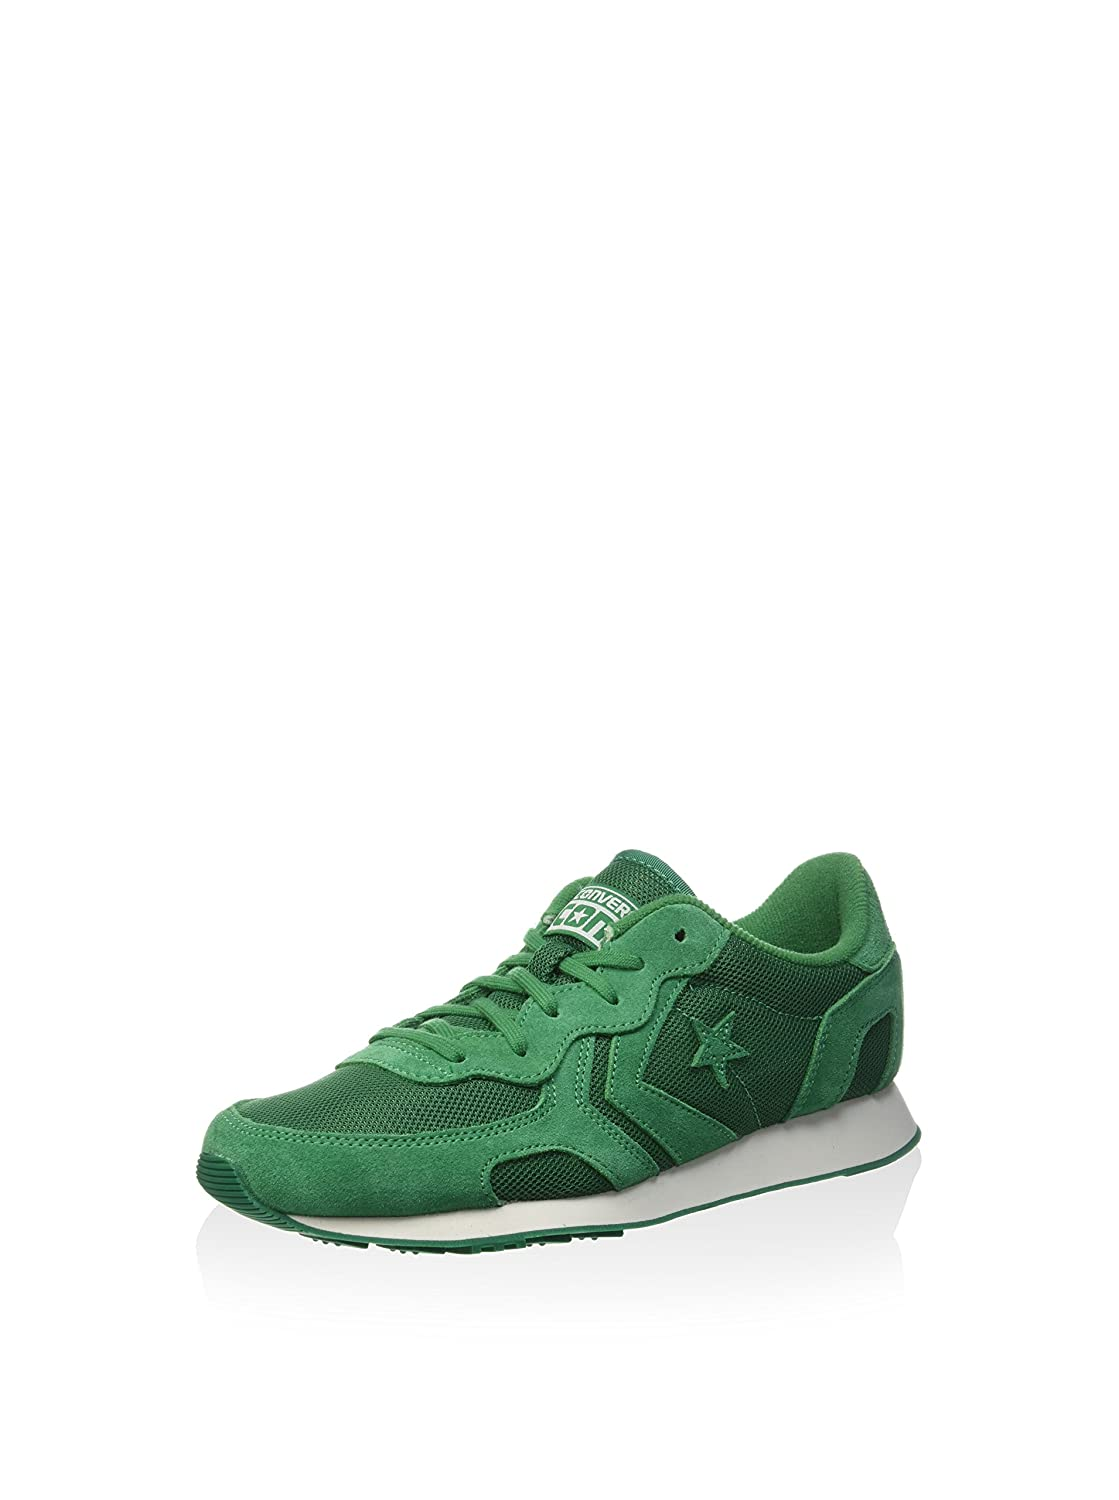 Converse Auckland Racer Textile / Leather low Trainers canvas unisex Adult